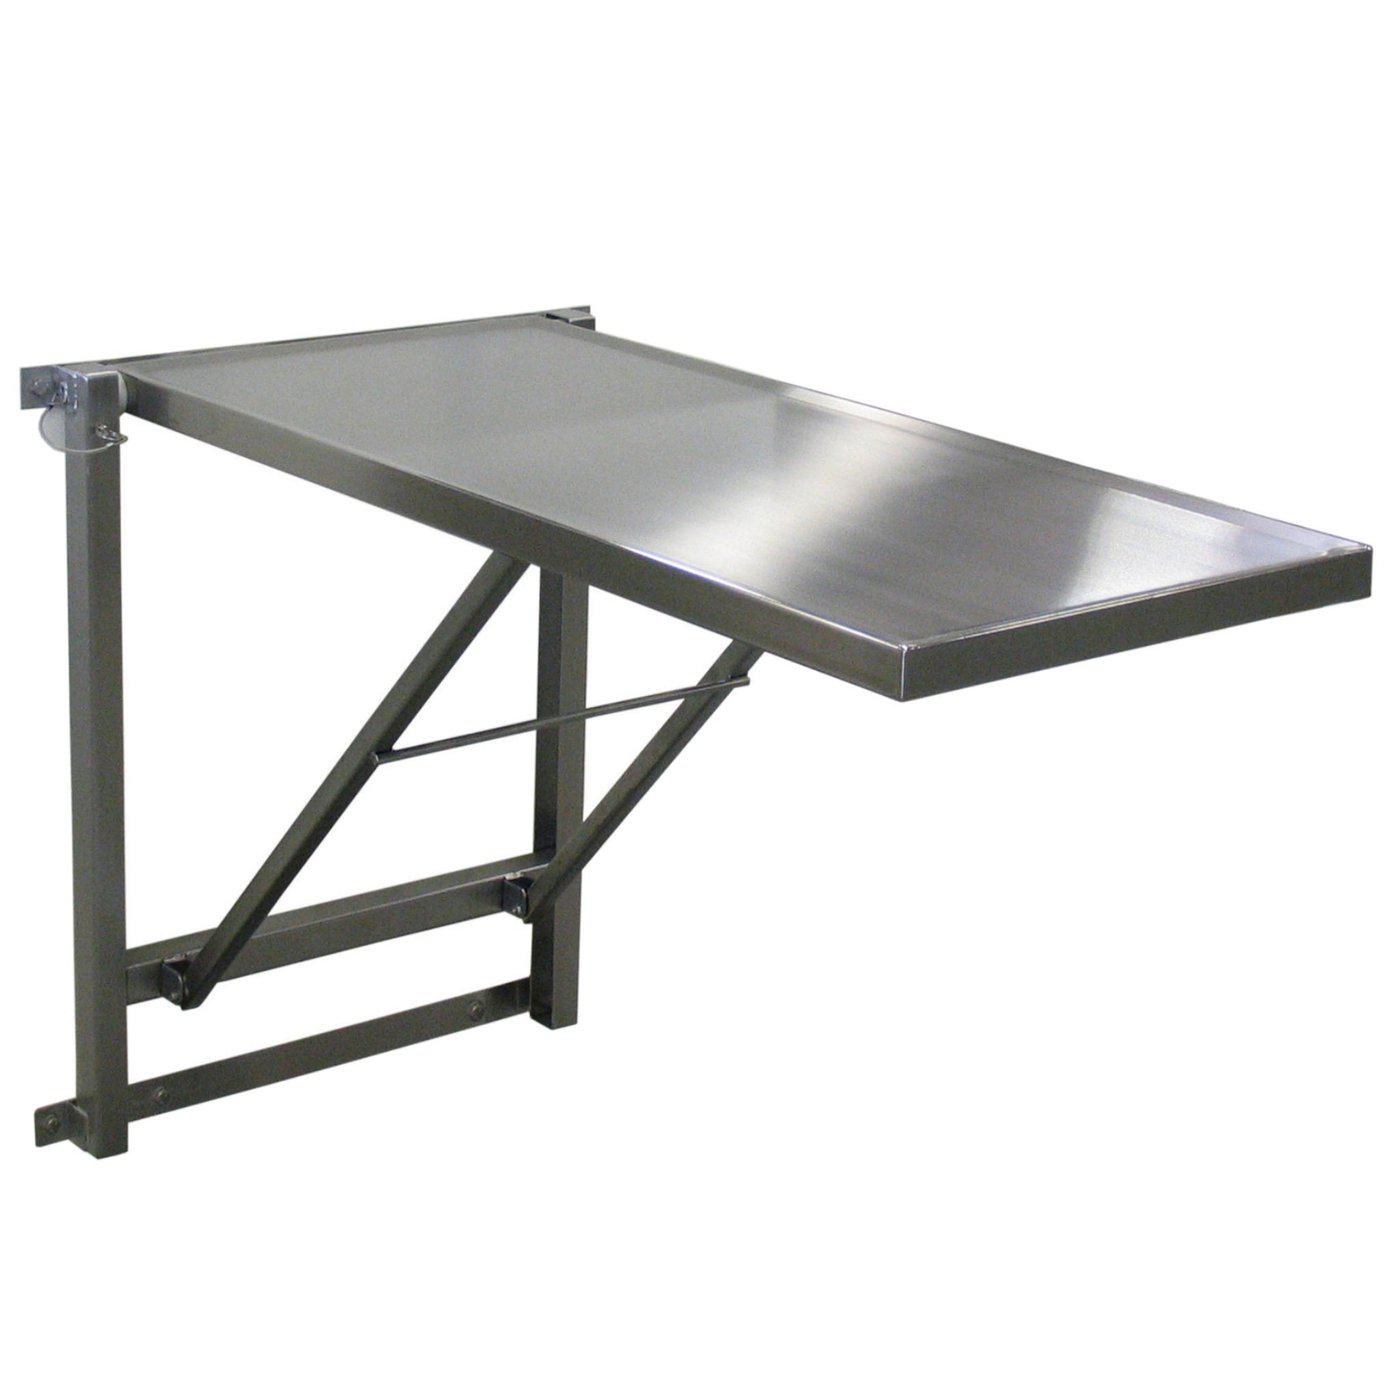 Captivating Folding Exam Table   Mortech Manufacturing Company Inc. Quality Stainless  Steel Autopsy, Morgue, Funeral Home, Necropsy, Veterinary / Anatomy, ...